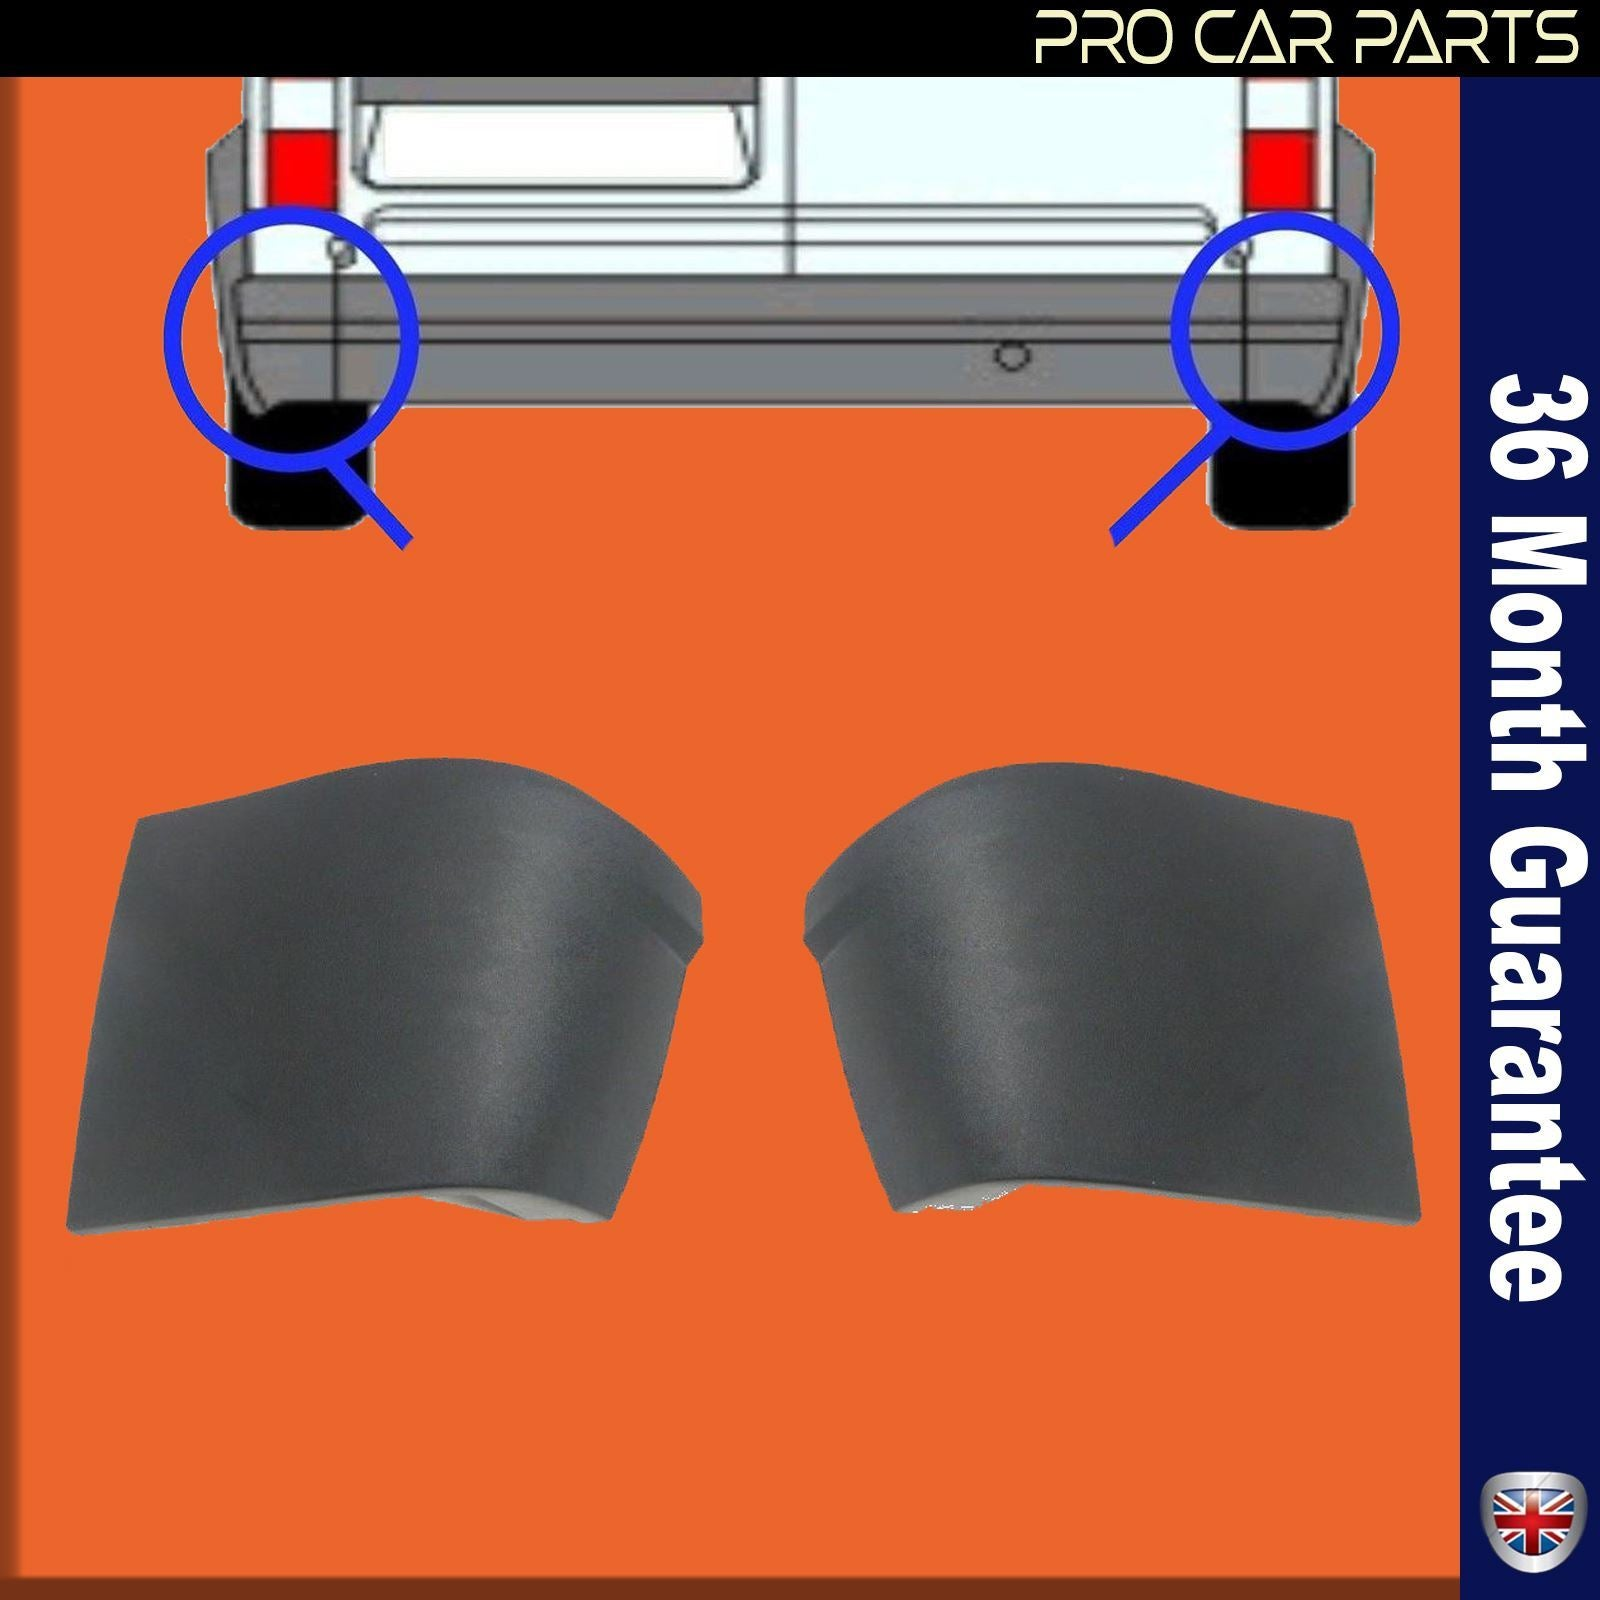 Rear BUMPER CORNER END CAPS w// CLIPS Fit For Ford TRANSIT CONNECT 02-12 L/&R SIDE